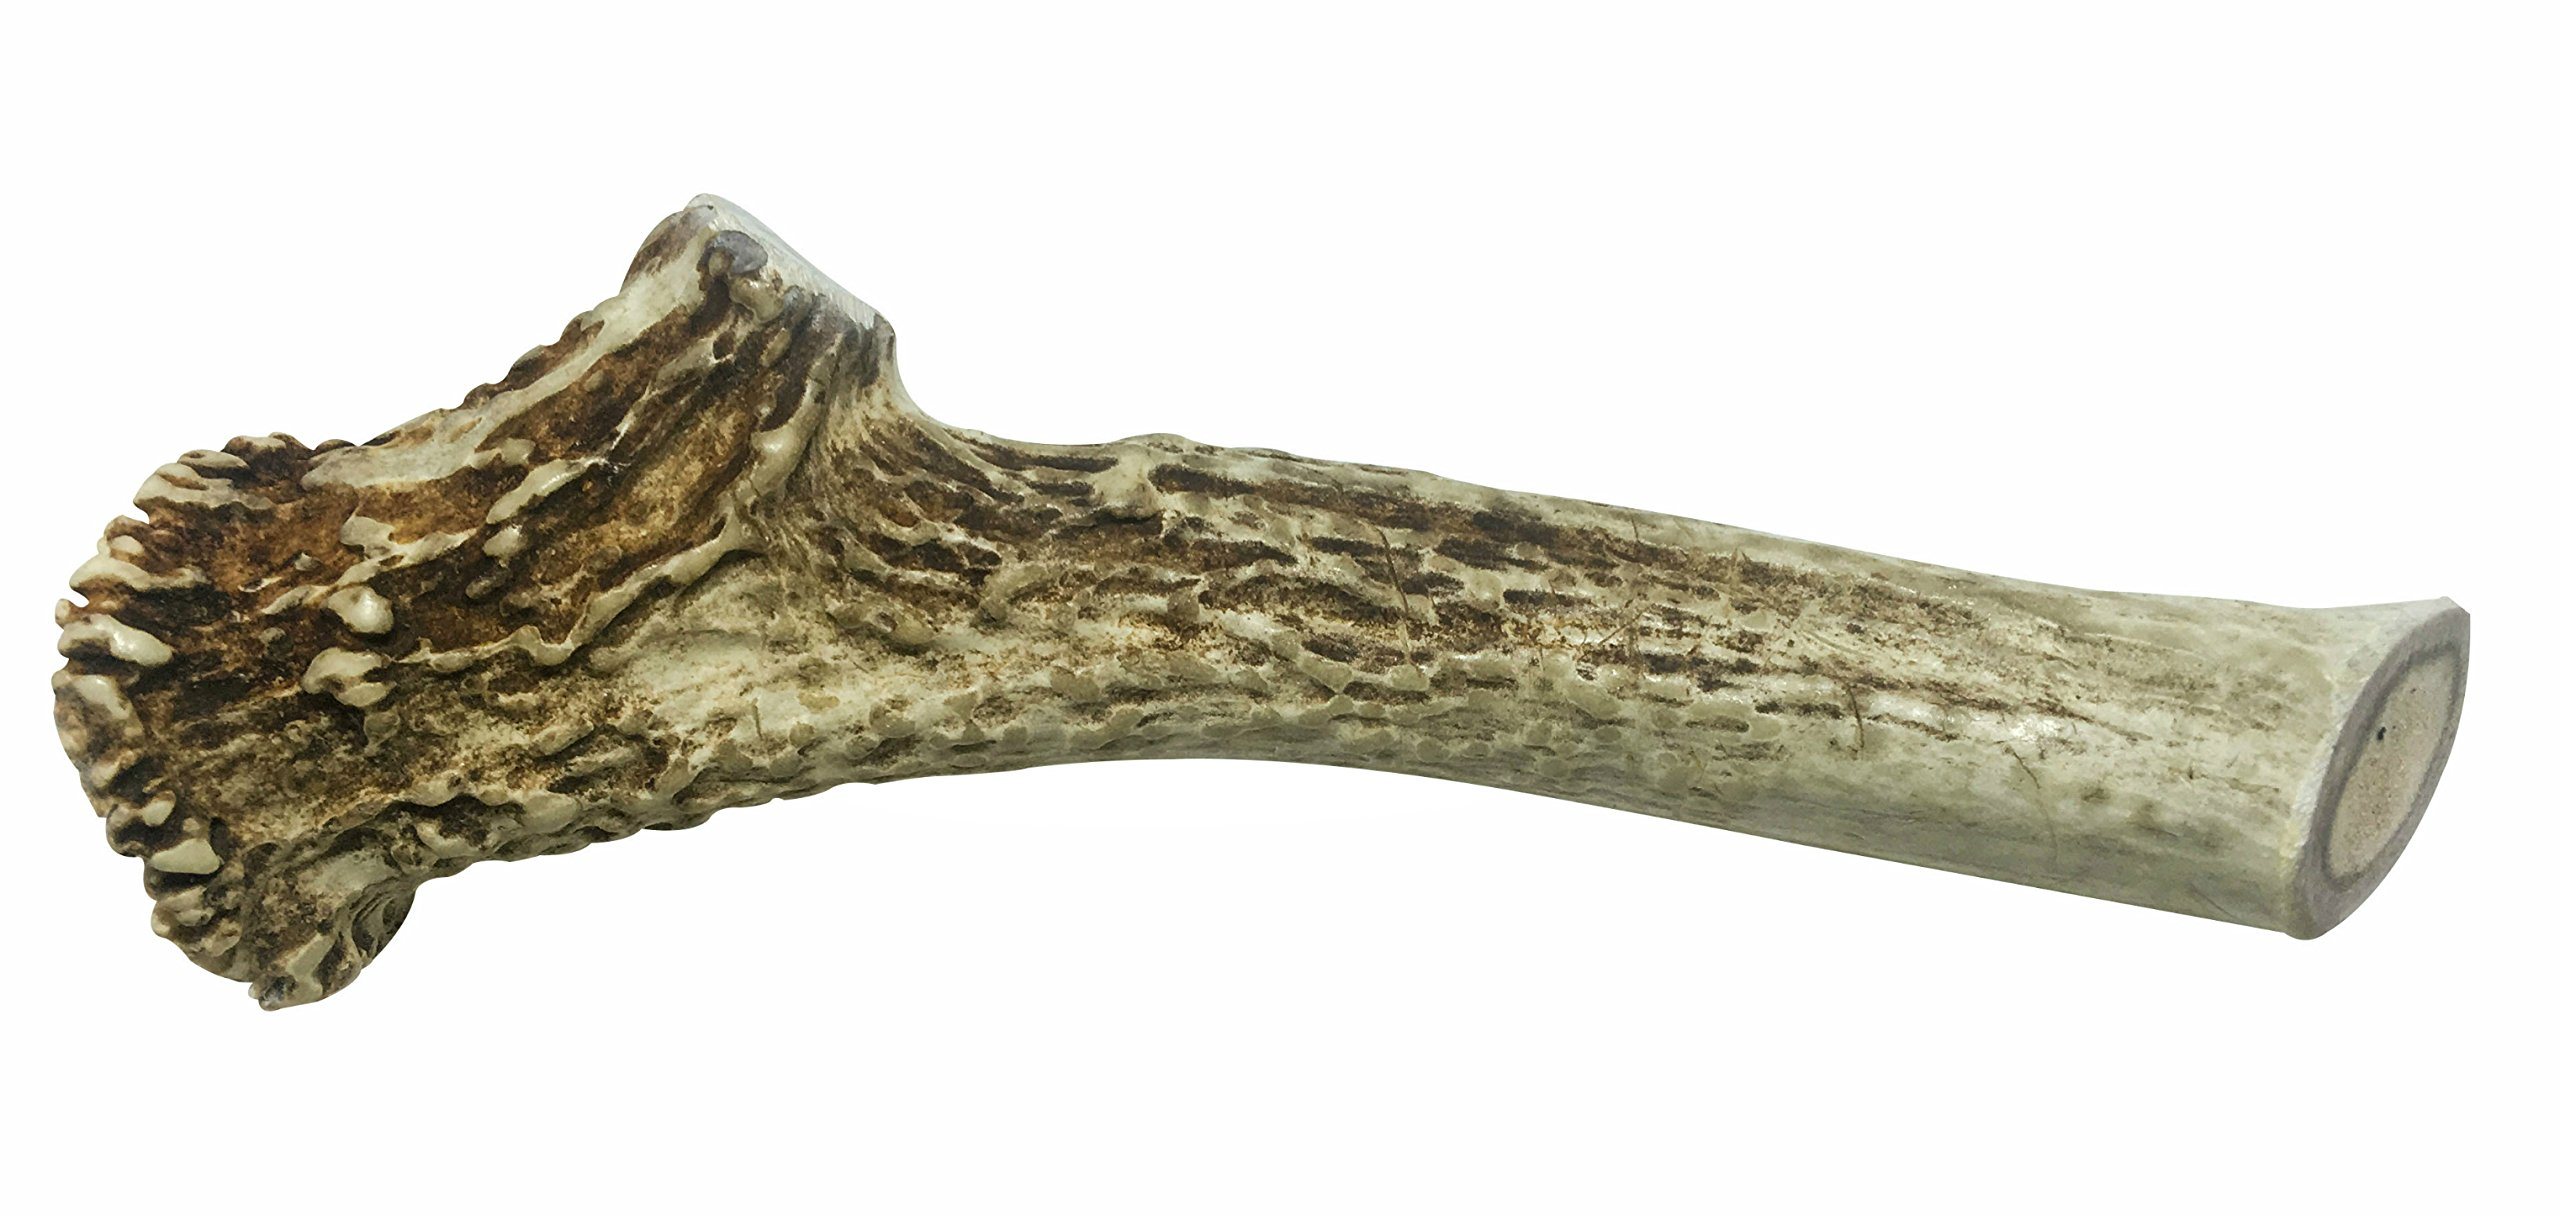 WhiteTail Naturals X-LARGE 7-8 Inch Deer Antler for Dogs, All Natural Antler Chew